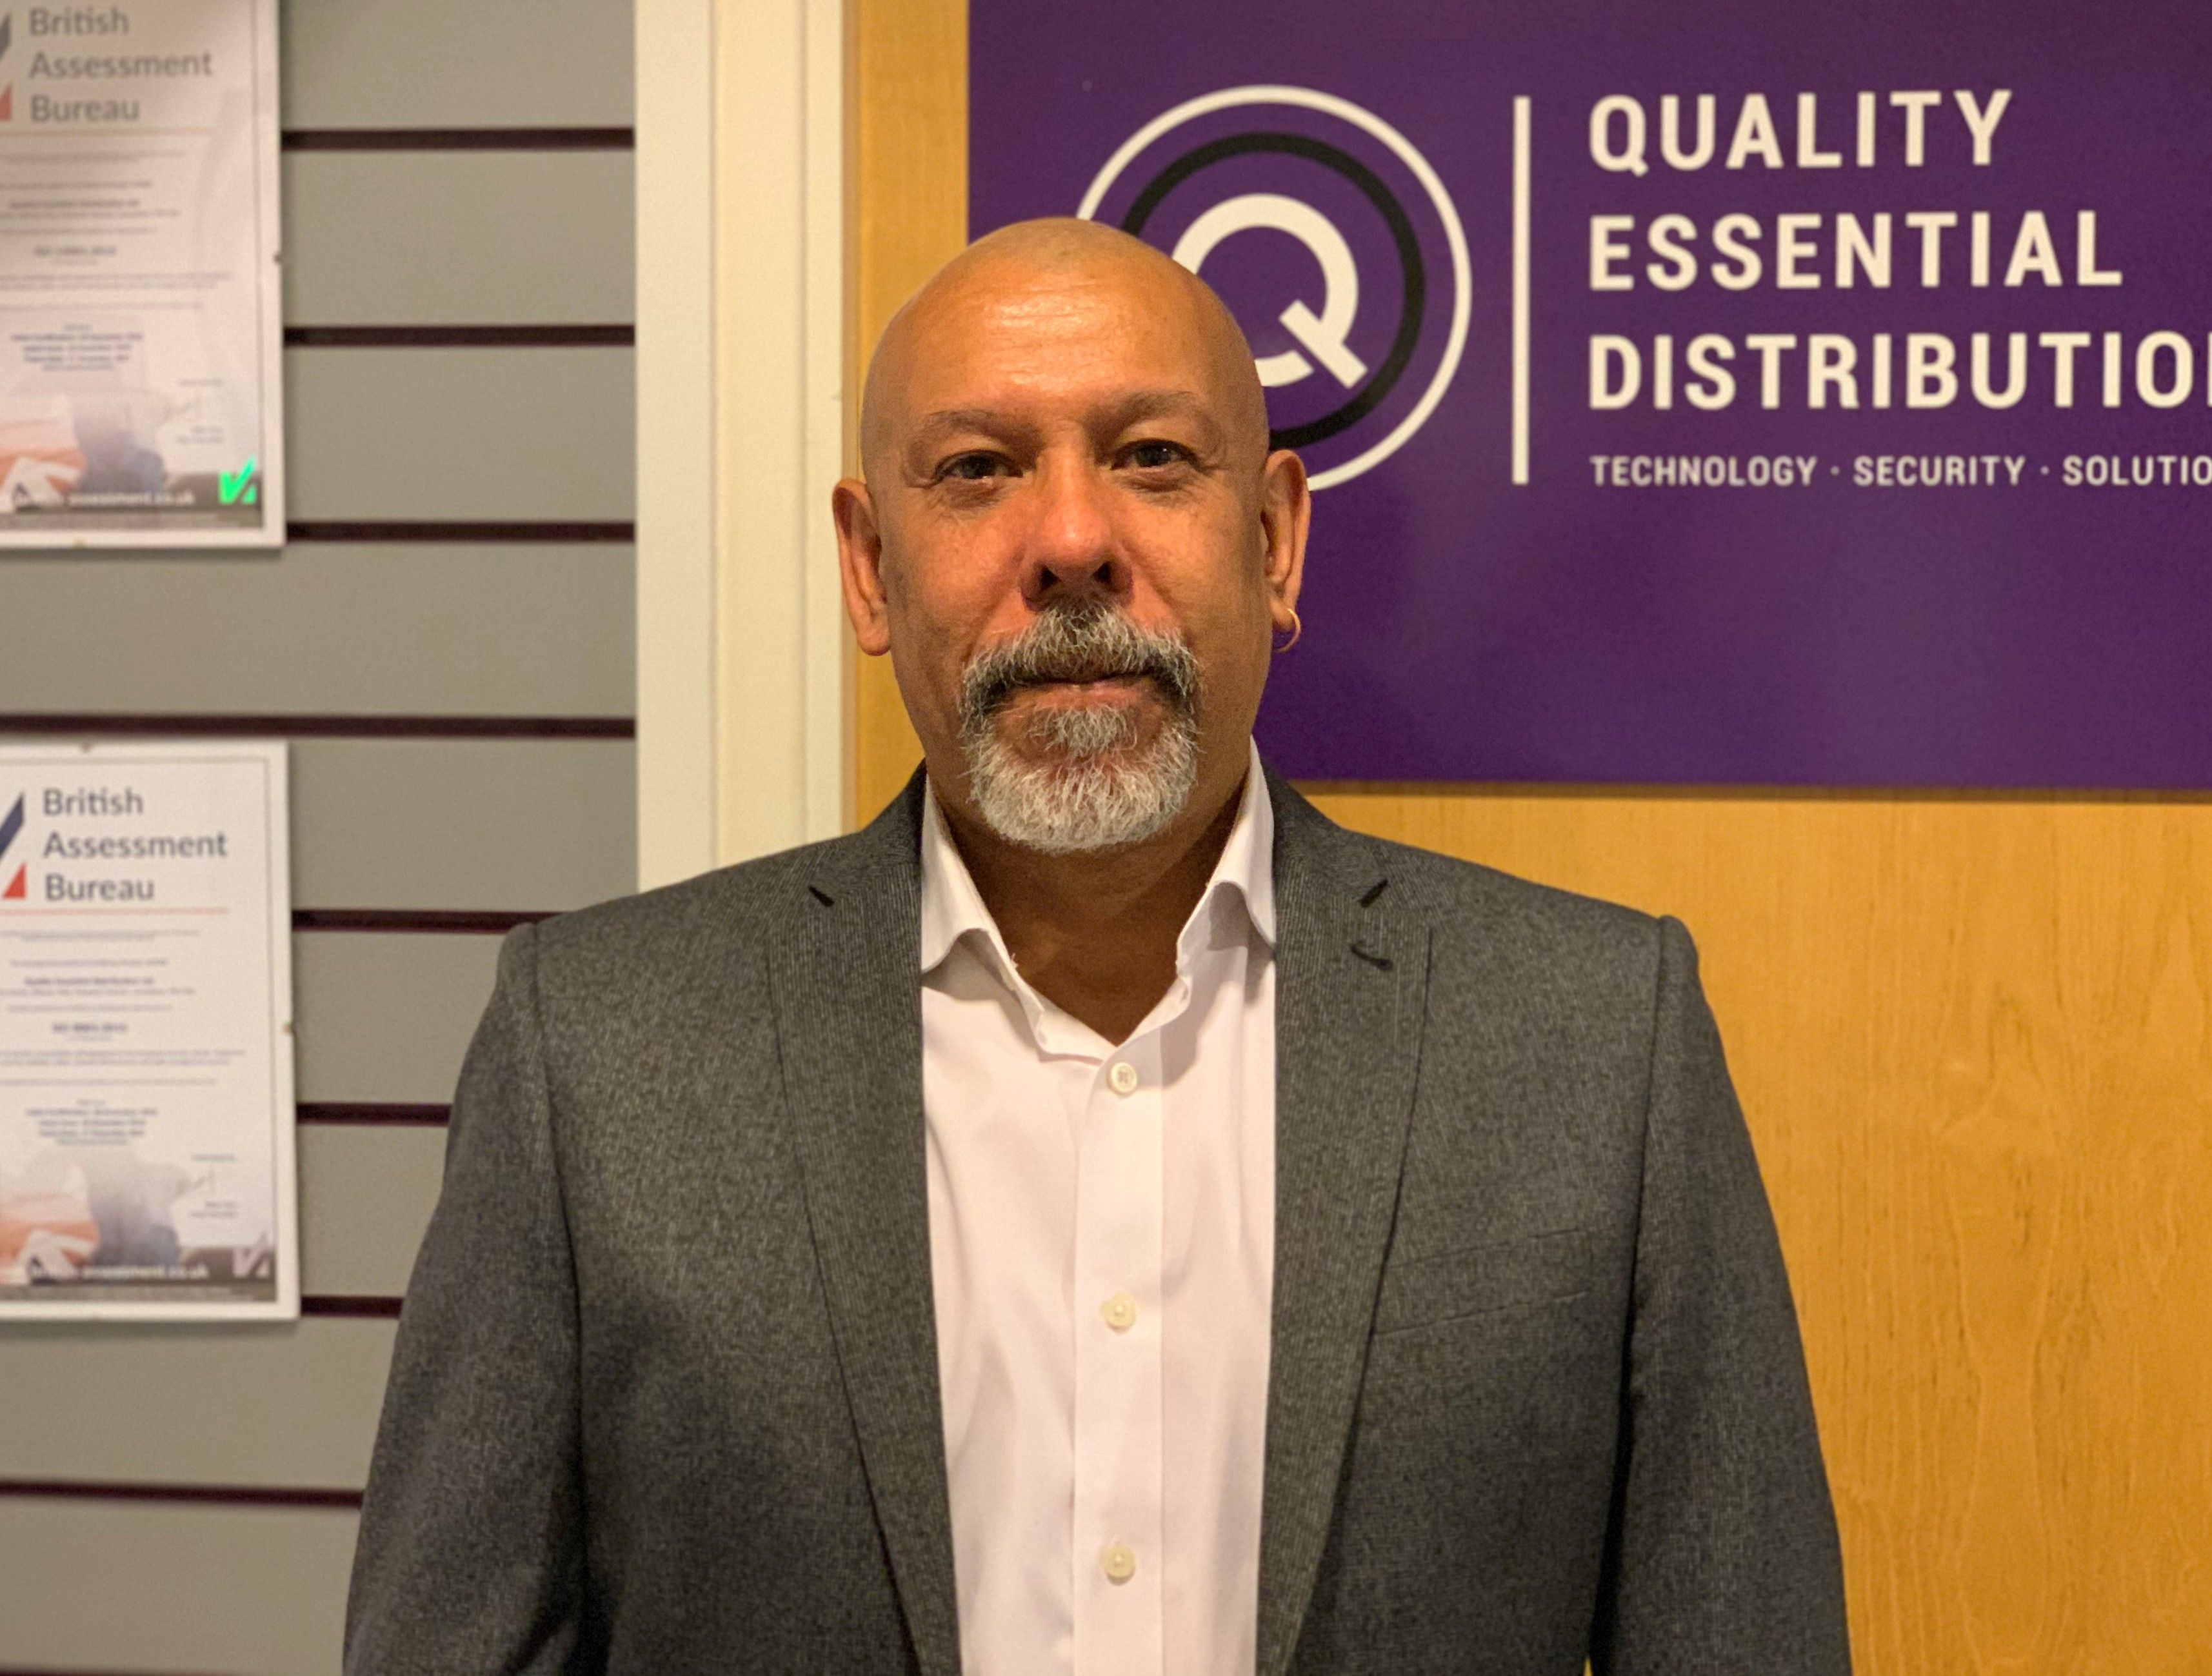 New Product Development Director appointed at Quality Essential Distribution